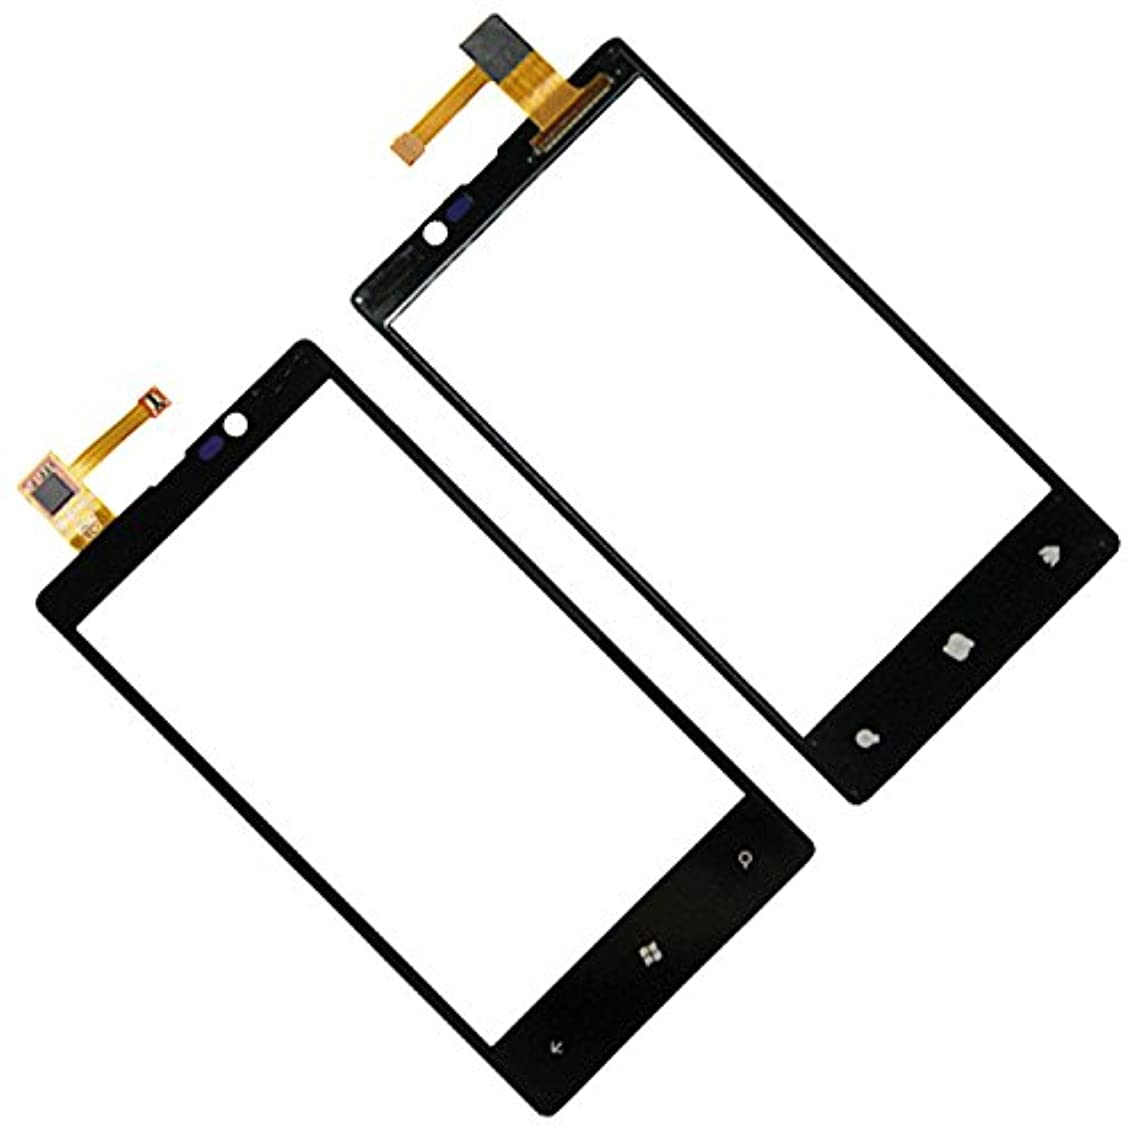 New Touch Screen Digitizer Glass Lens for Nokia Lumia 820